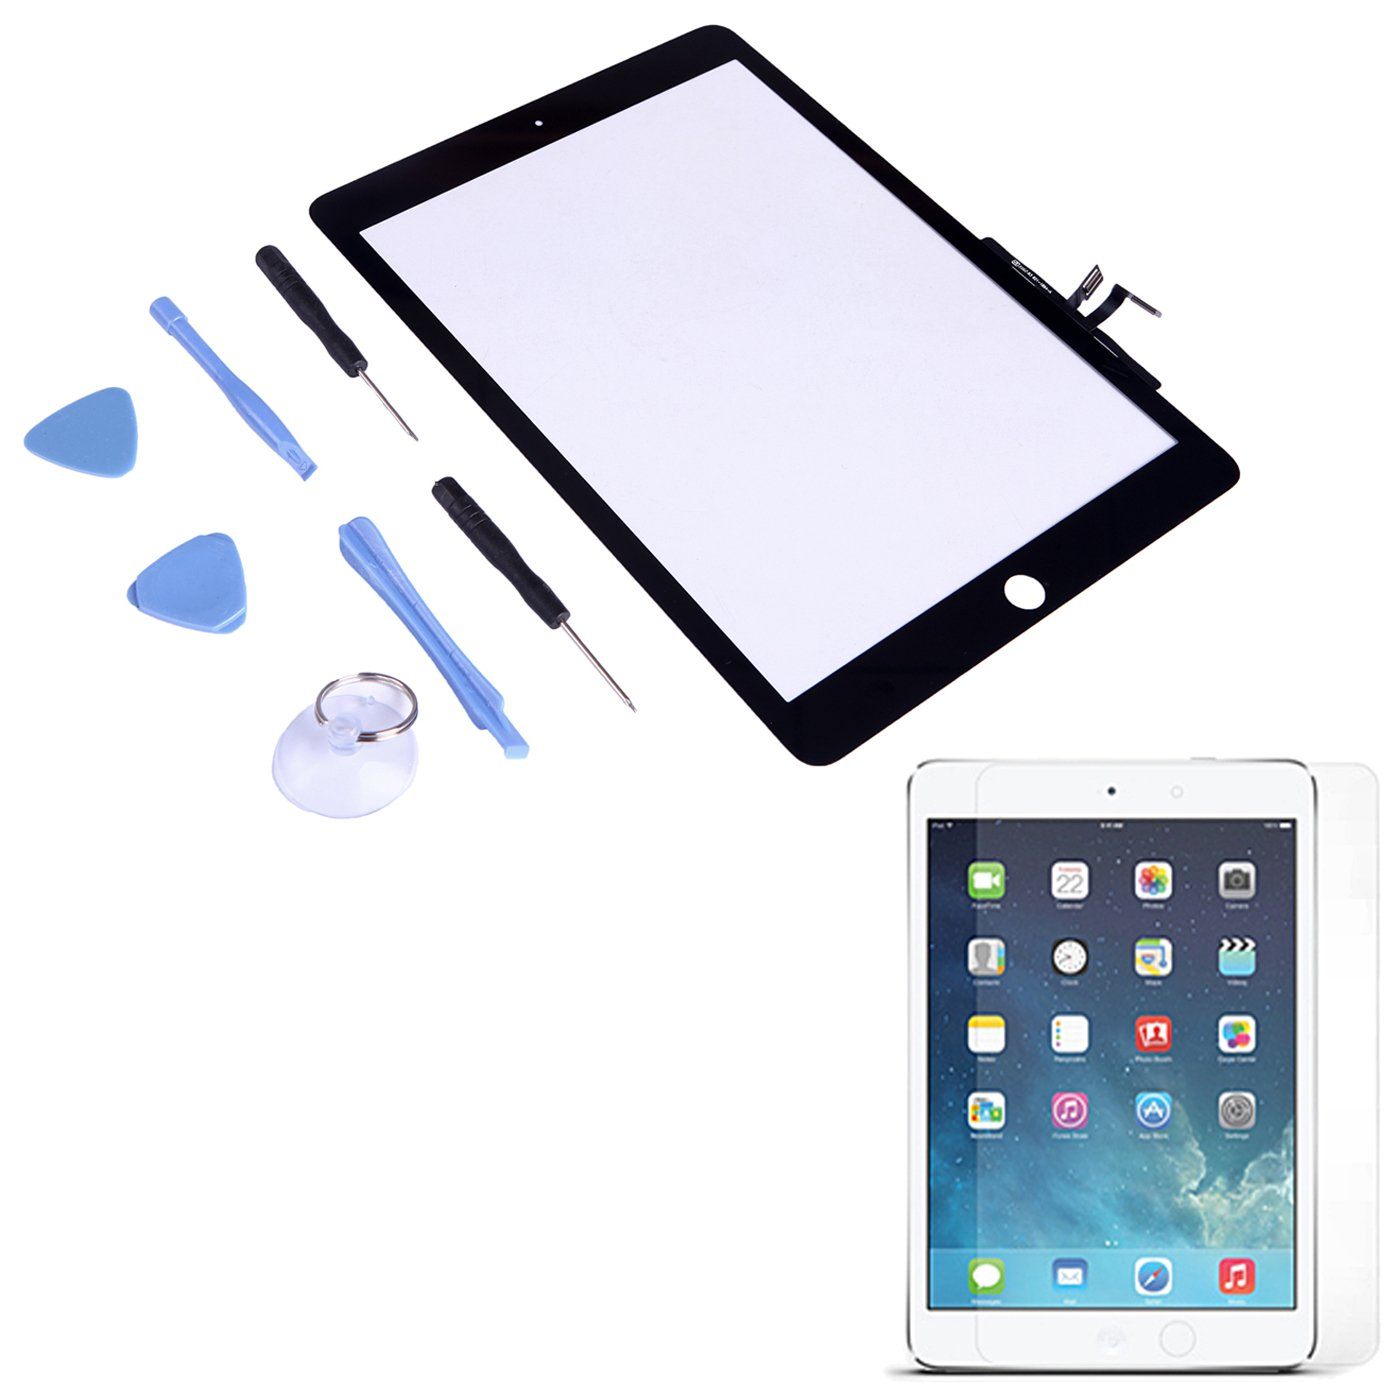 HDE Replacement Front Glass Digitizer Touch Screen for iPad Air + Tool Kit + Adhesive Tape + Screen Protector (Black)